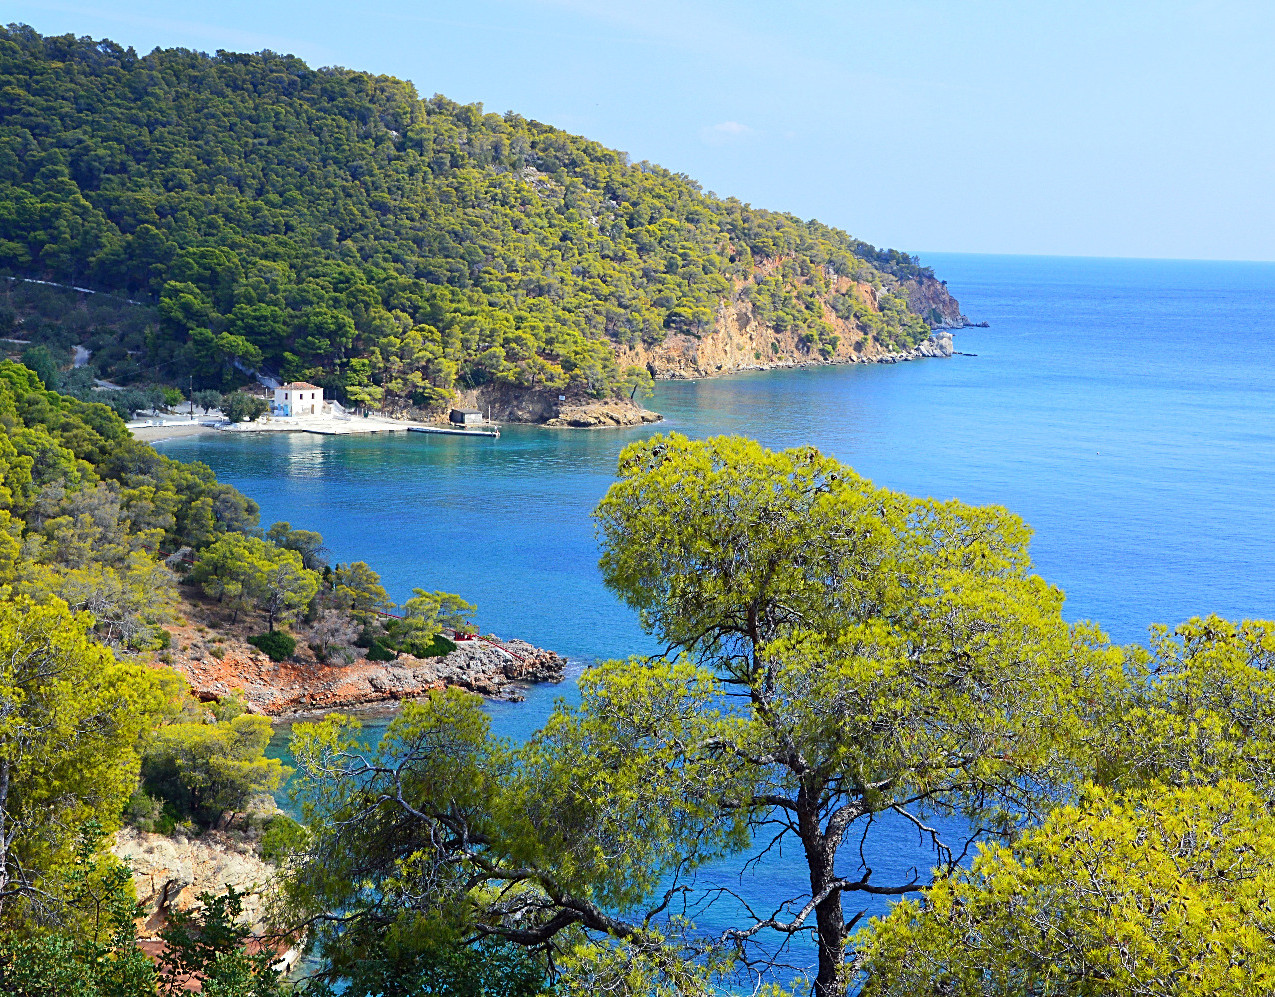 Situated on one of the easterly coastal roads and set below the Monastery